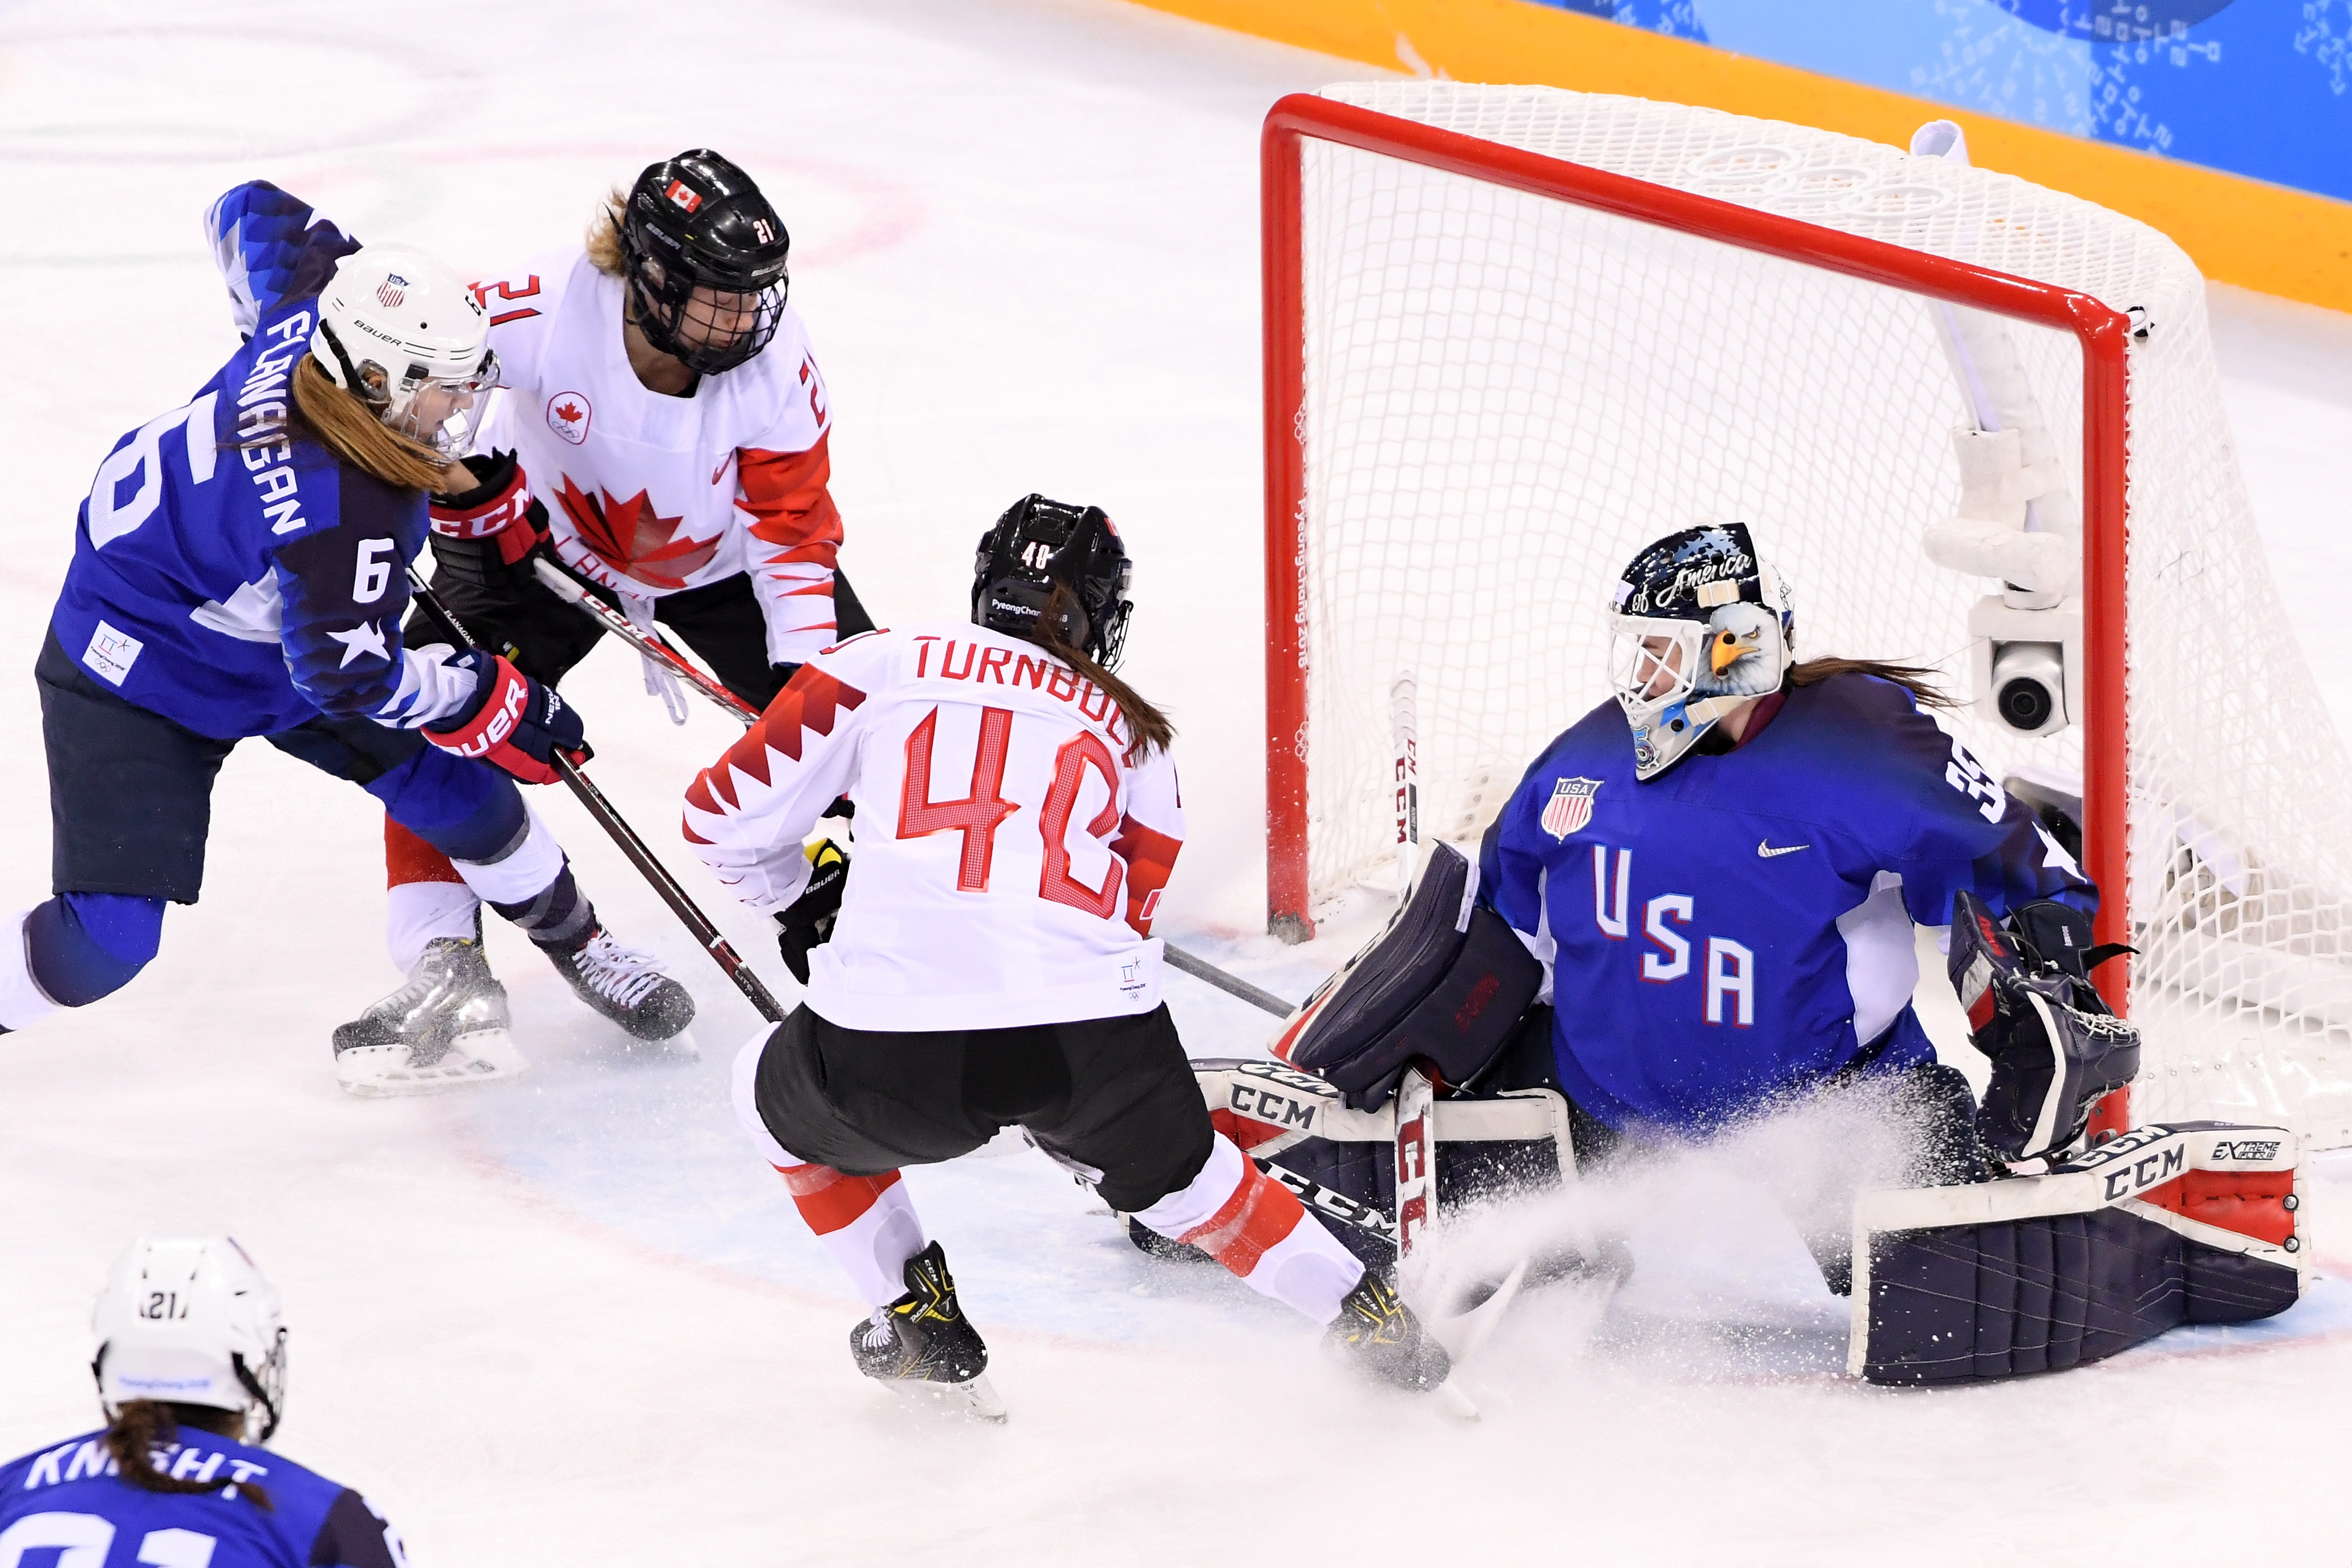 Madeline Rooney #35 of the United States tends goal against Blayre Turnbull #40 and Haley Irwin #21 of Canada in the first period during the Women's Gold Medal Game on day thirteen of the PyeongChang 2018 Winter Olympic Games at Gangneung Hockey Centre on February 22, 2018 in Gangneung, South Korea.